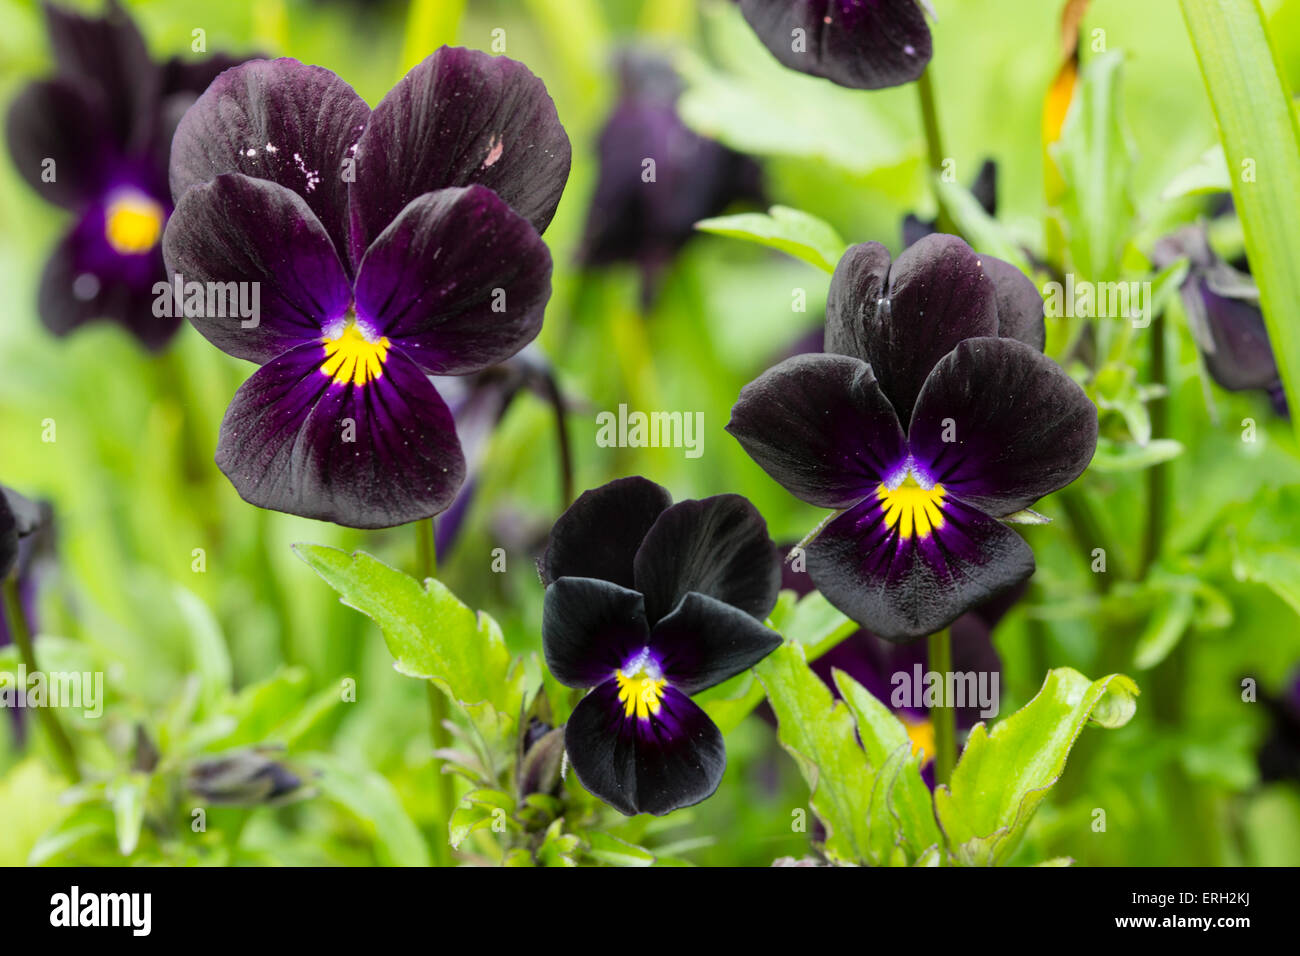 Dark velvet flowers of the diminutive Viola 'Bowles Black' Stock Photo